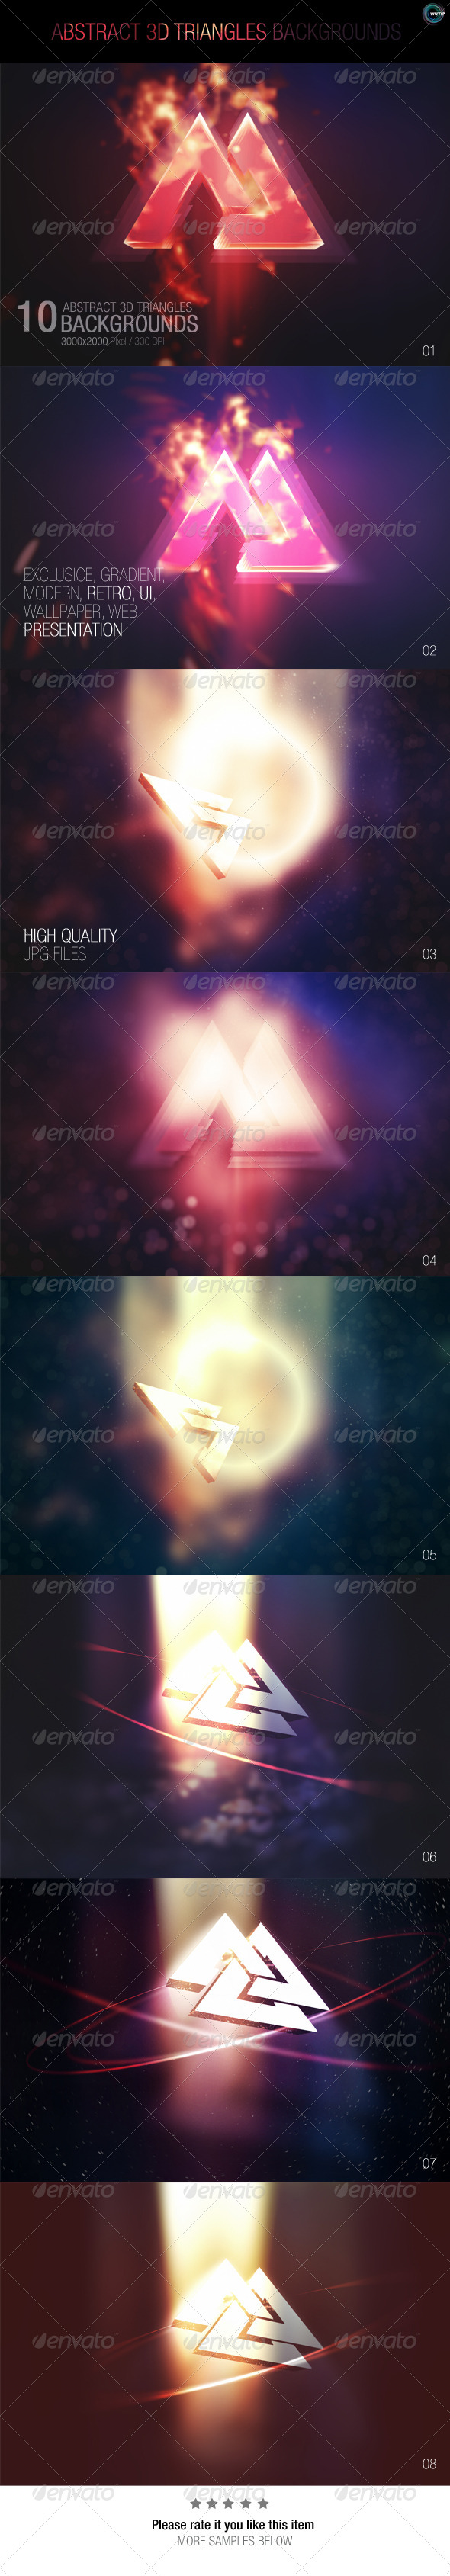 GraphicRiver Abstract 3D Triangles Backgrounds 7752664